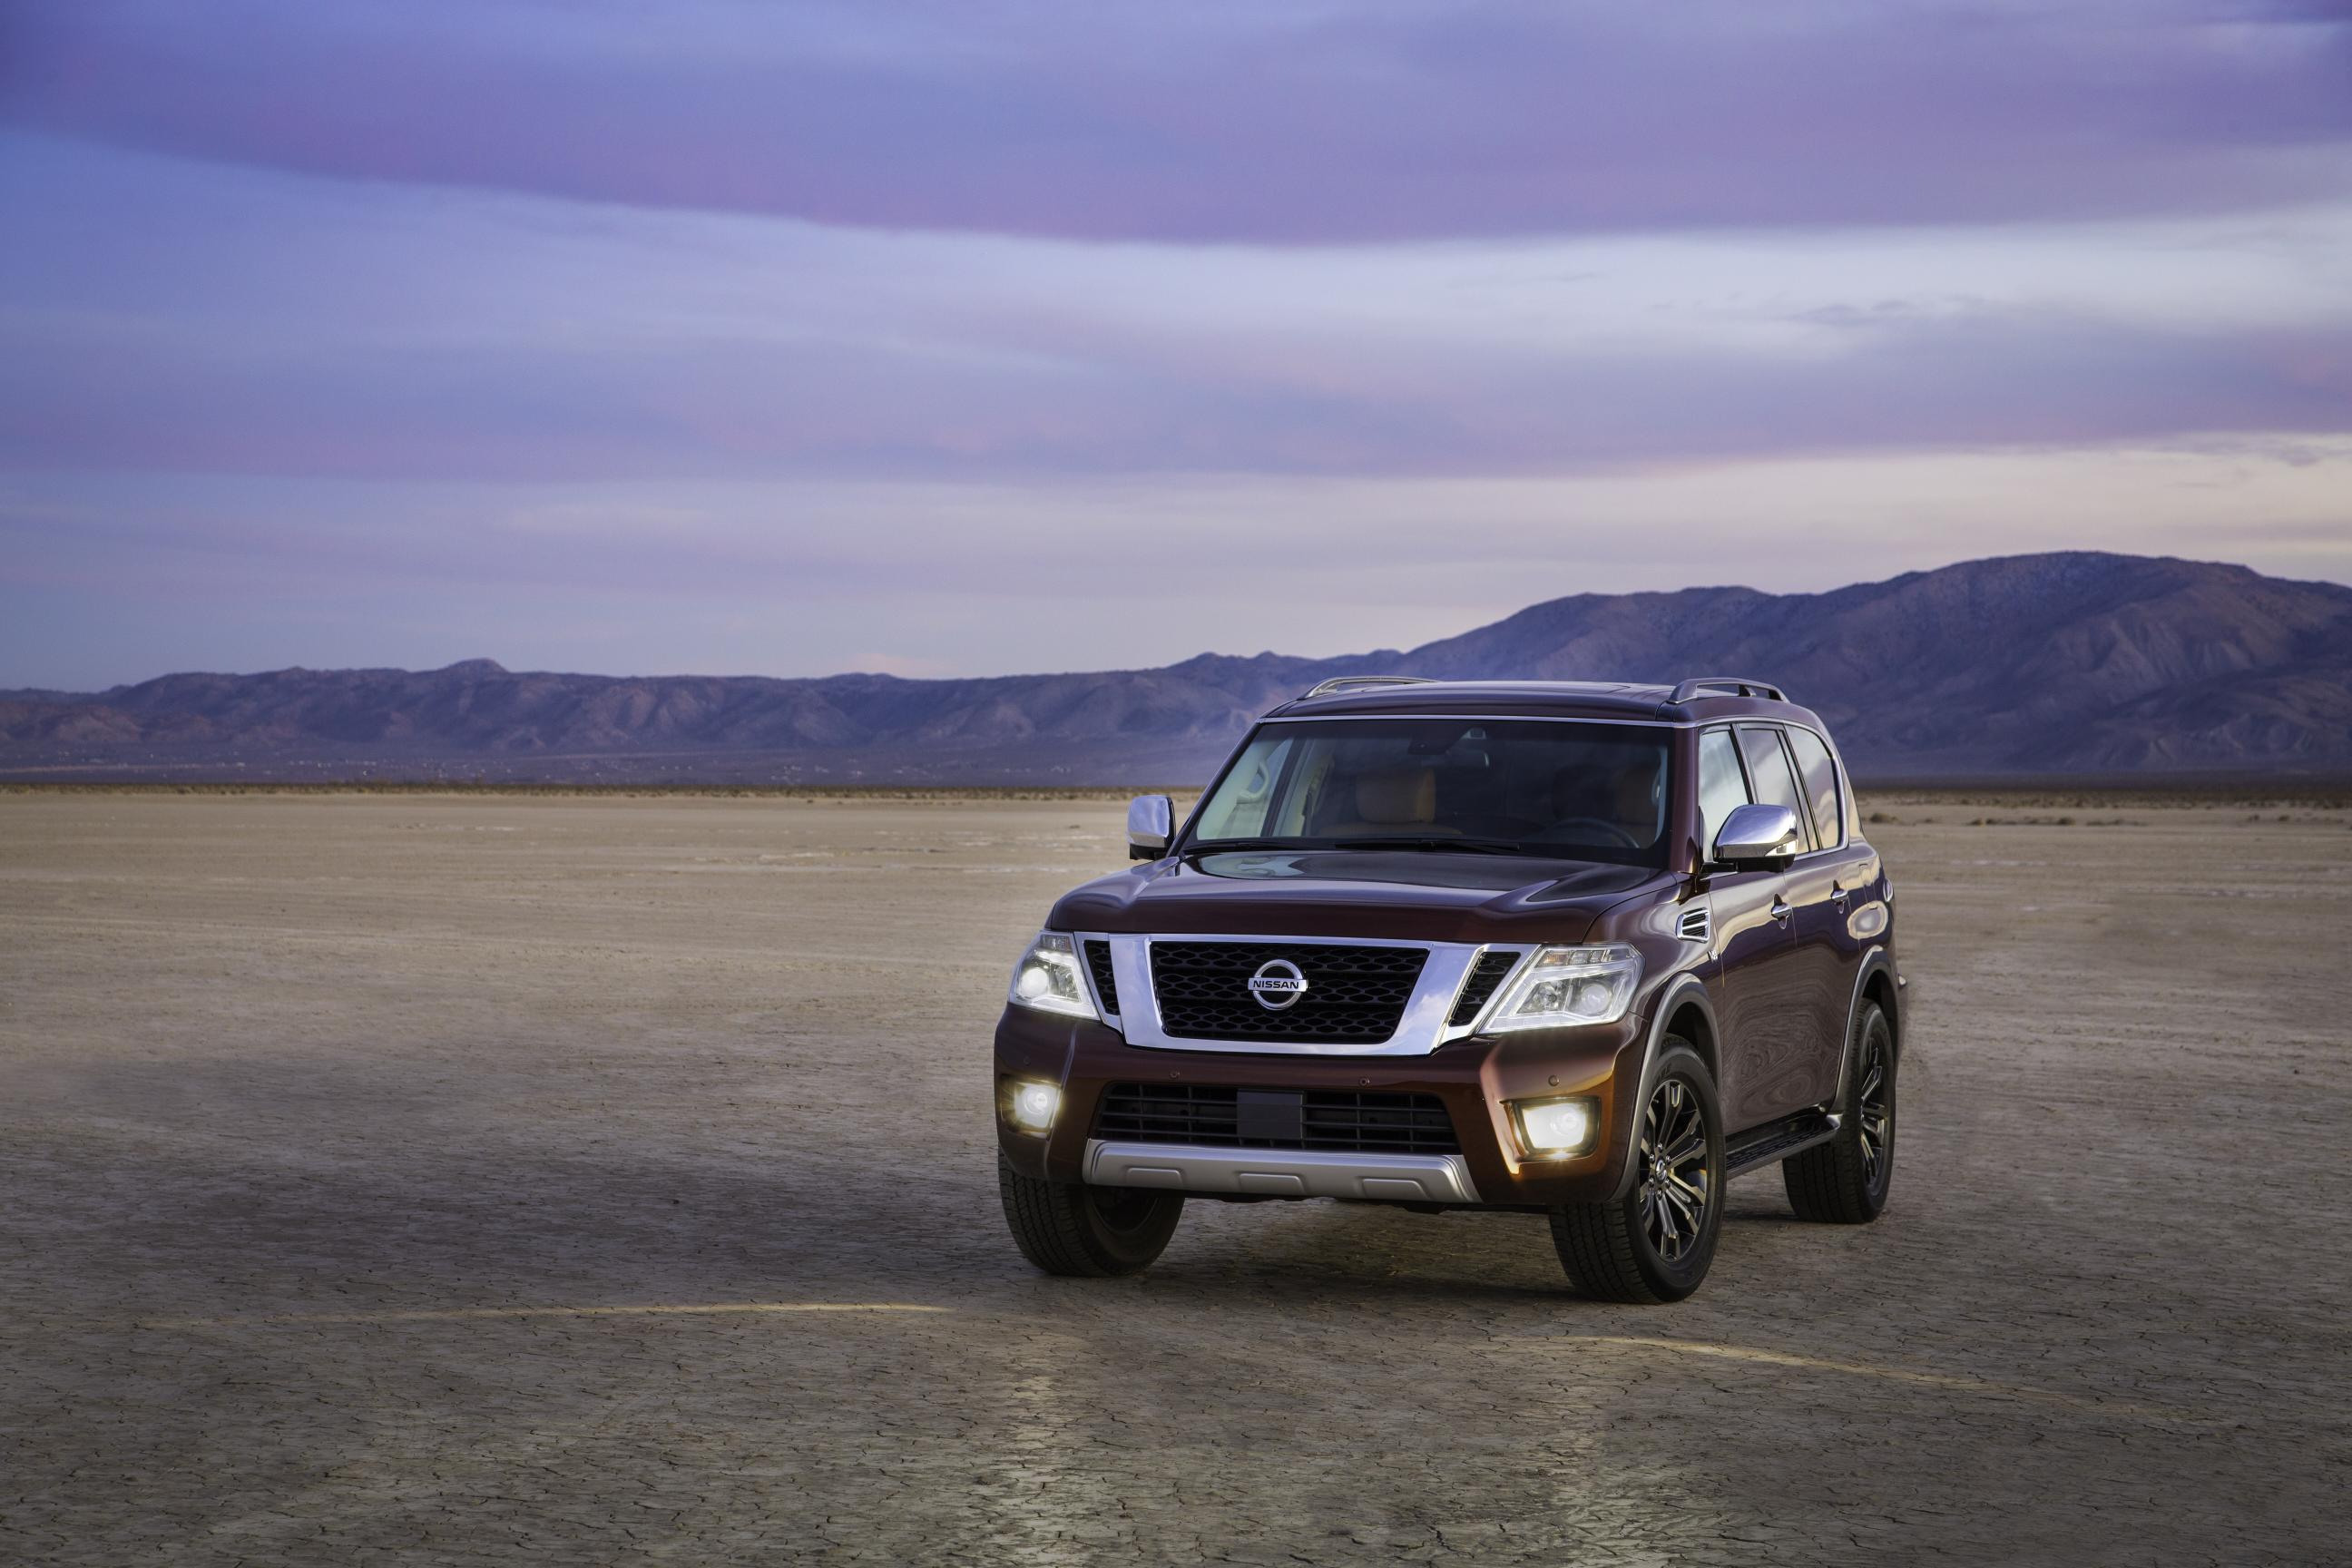 Fastest Car In The World Wallpaper 2015 2017 Nissan Armada Is In Fact A Nissan Patrol Y62